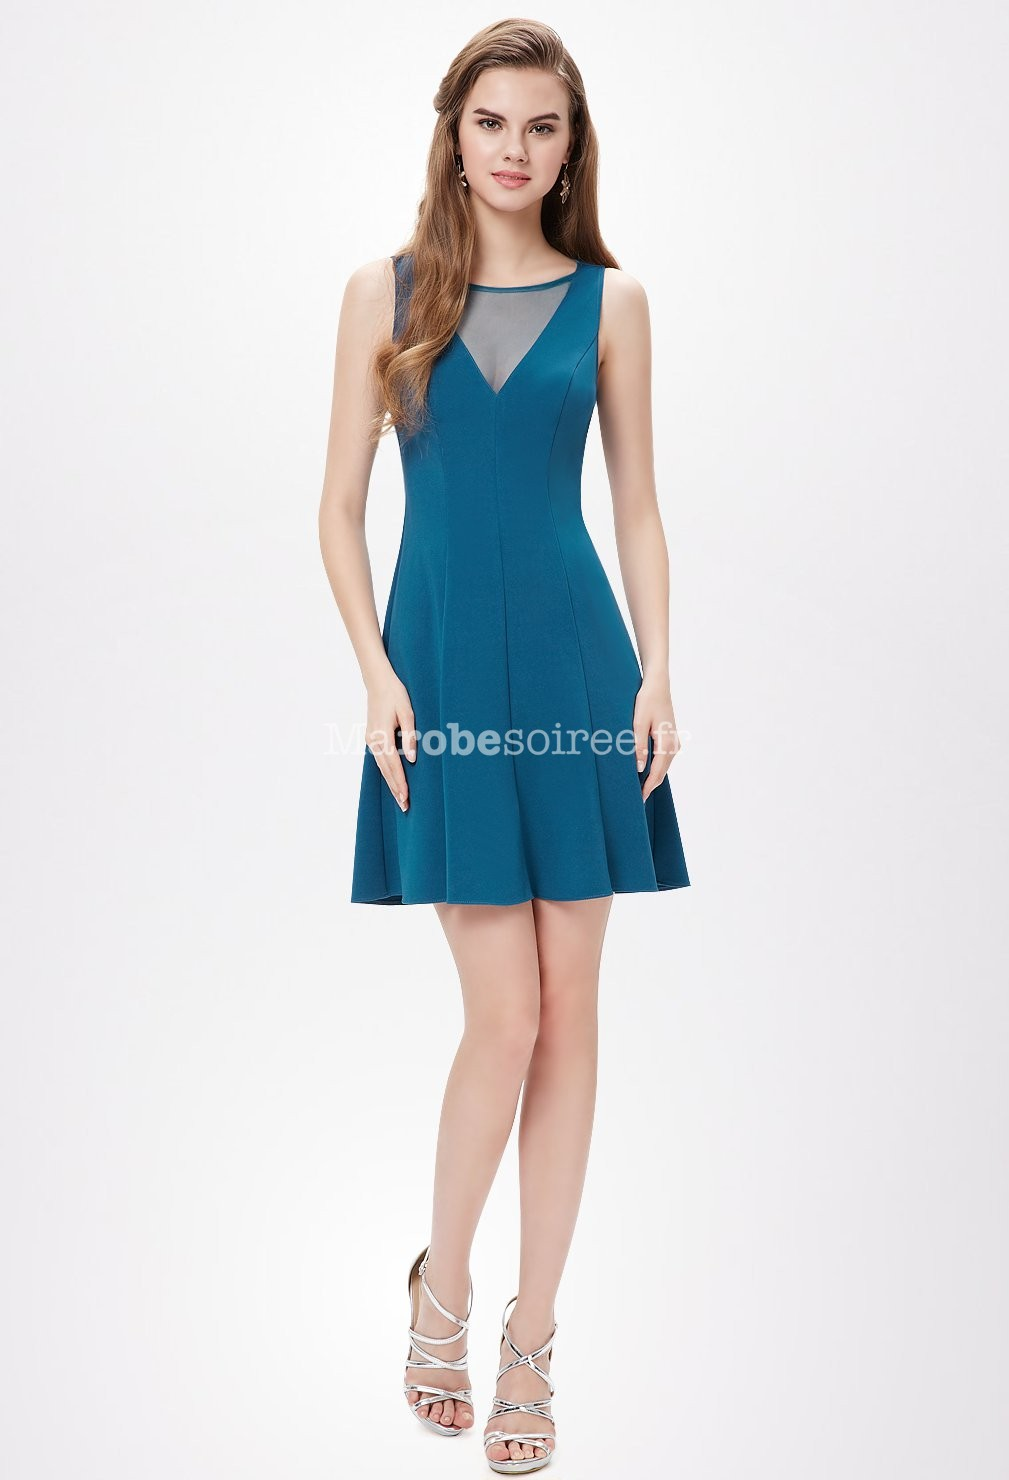 robe habillee pour mariage taille 46 - Robe Bleu Electrique Mariage